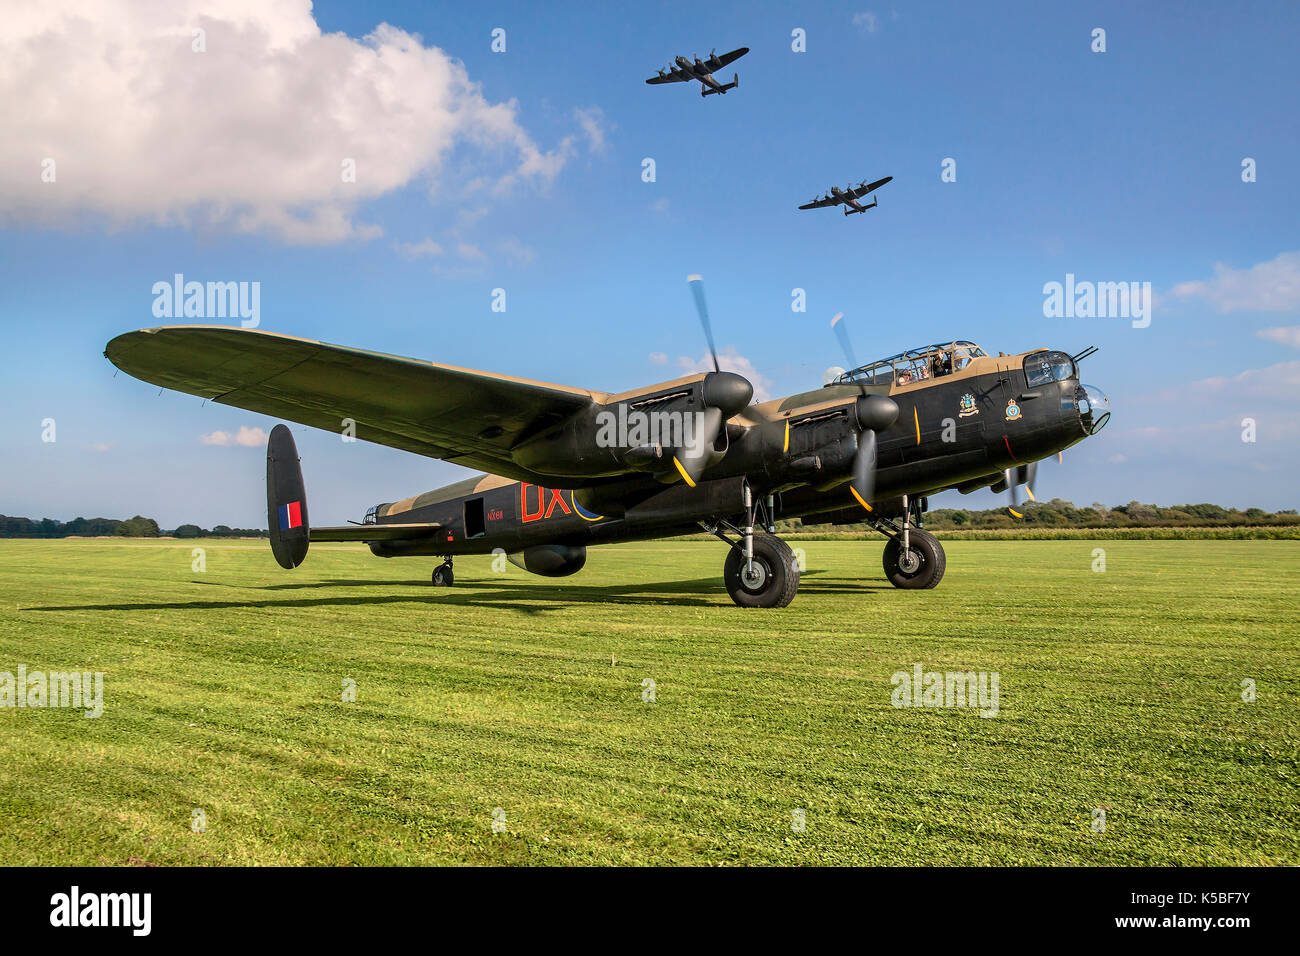 Lancasters 'City of Lincoln' and 'Vera' fly over 'Just Jane' at East Kirkby. - Stock Image